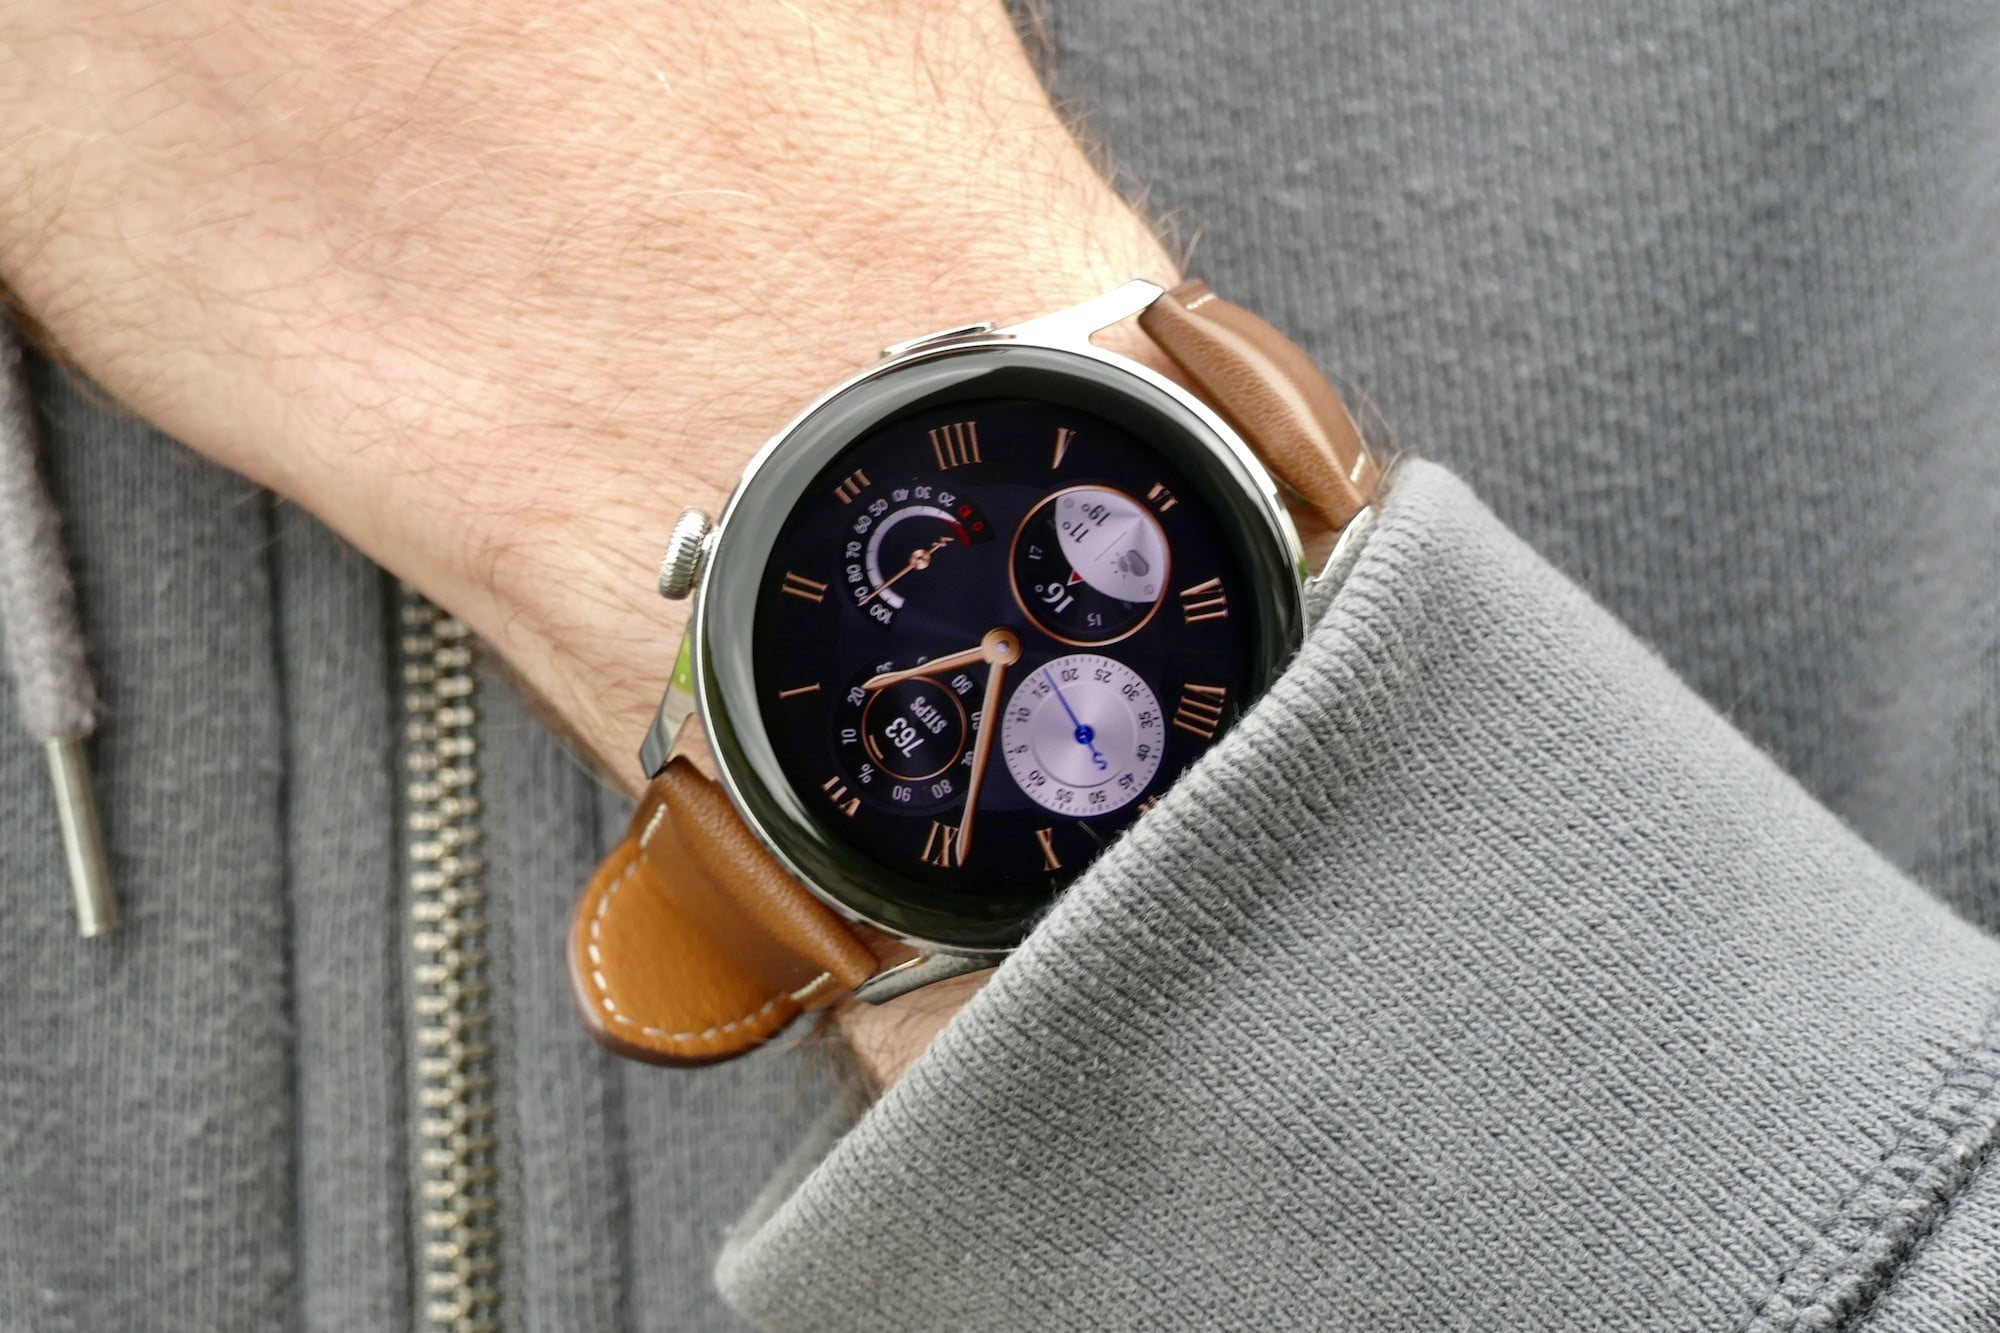 Huawei Watch 3 review: To achieve perfect Harmony, you'll need to commit to it